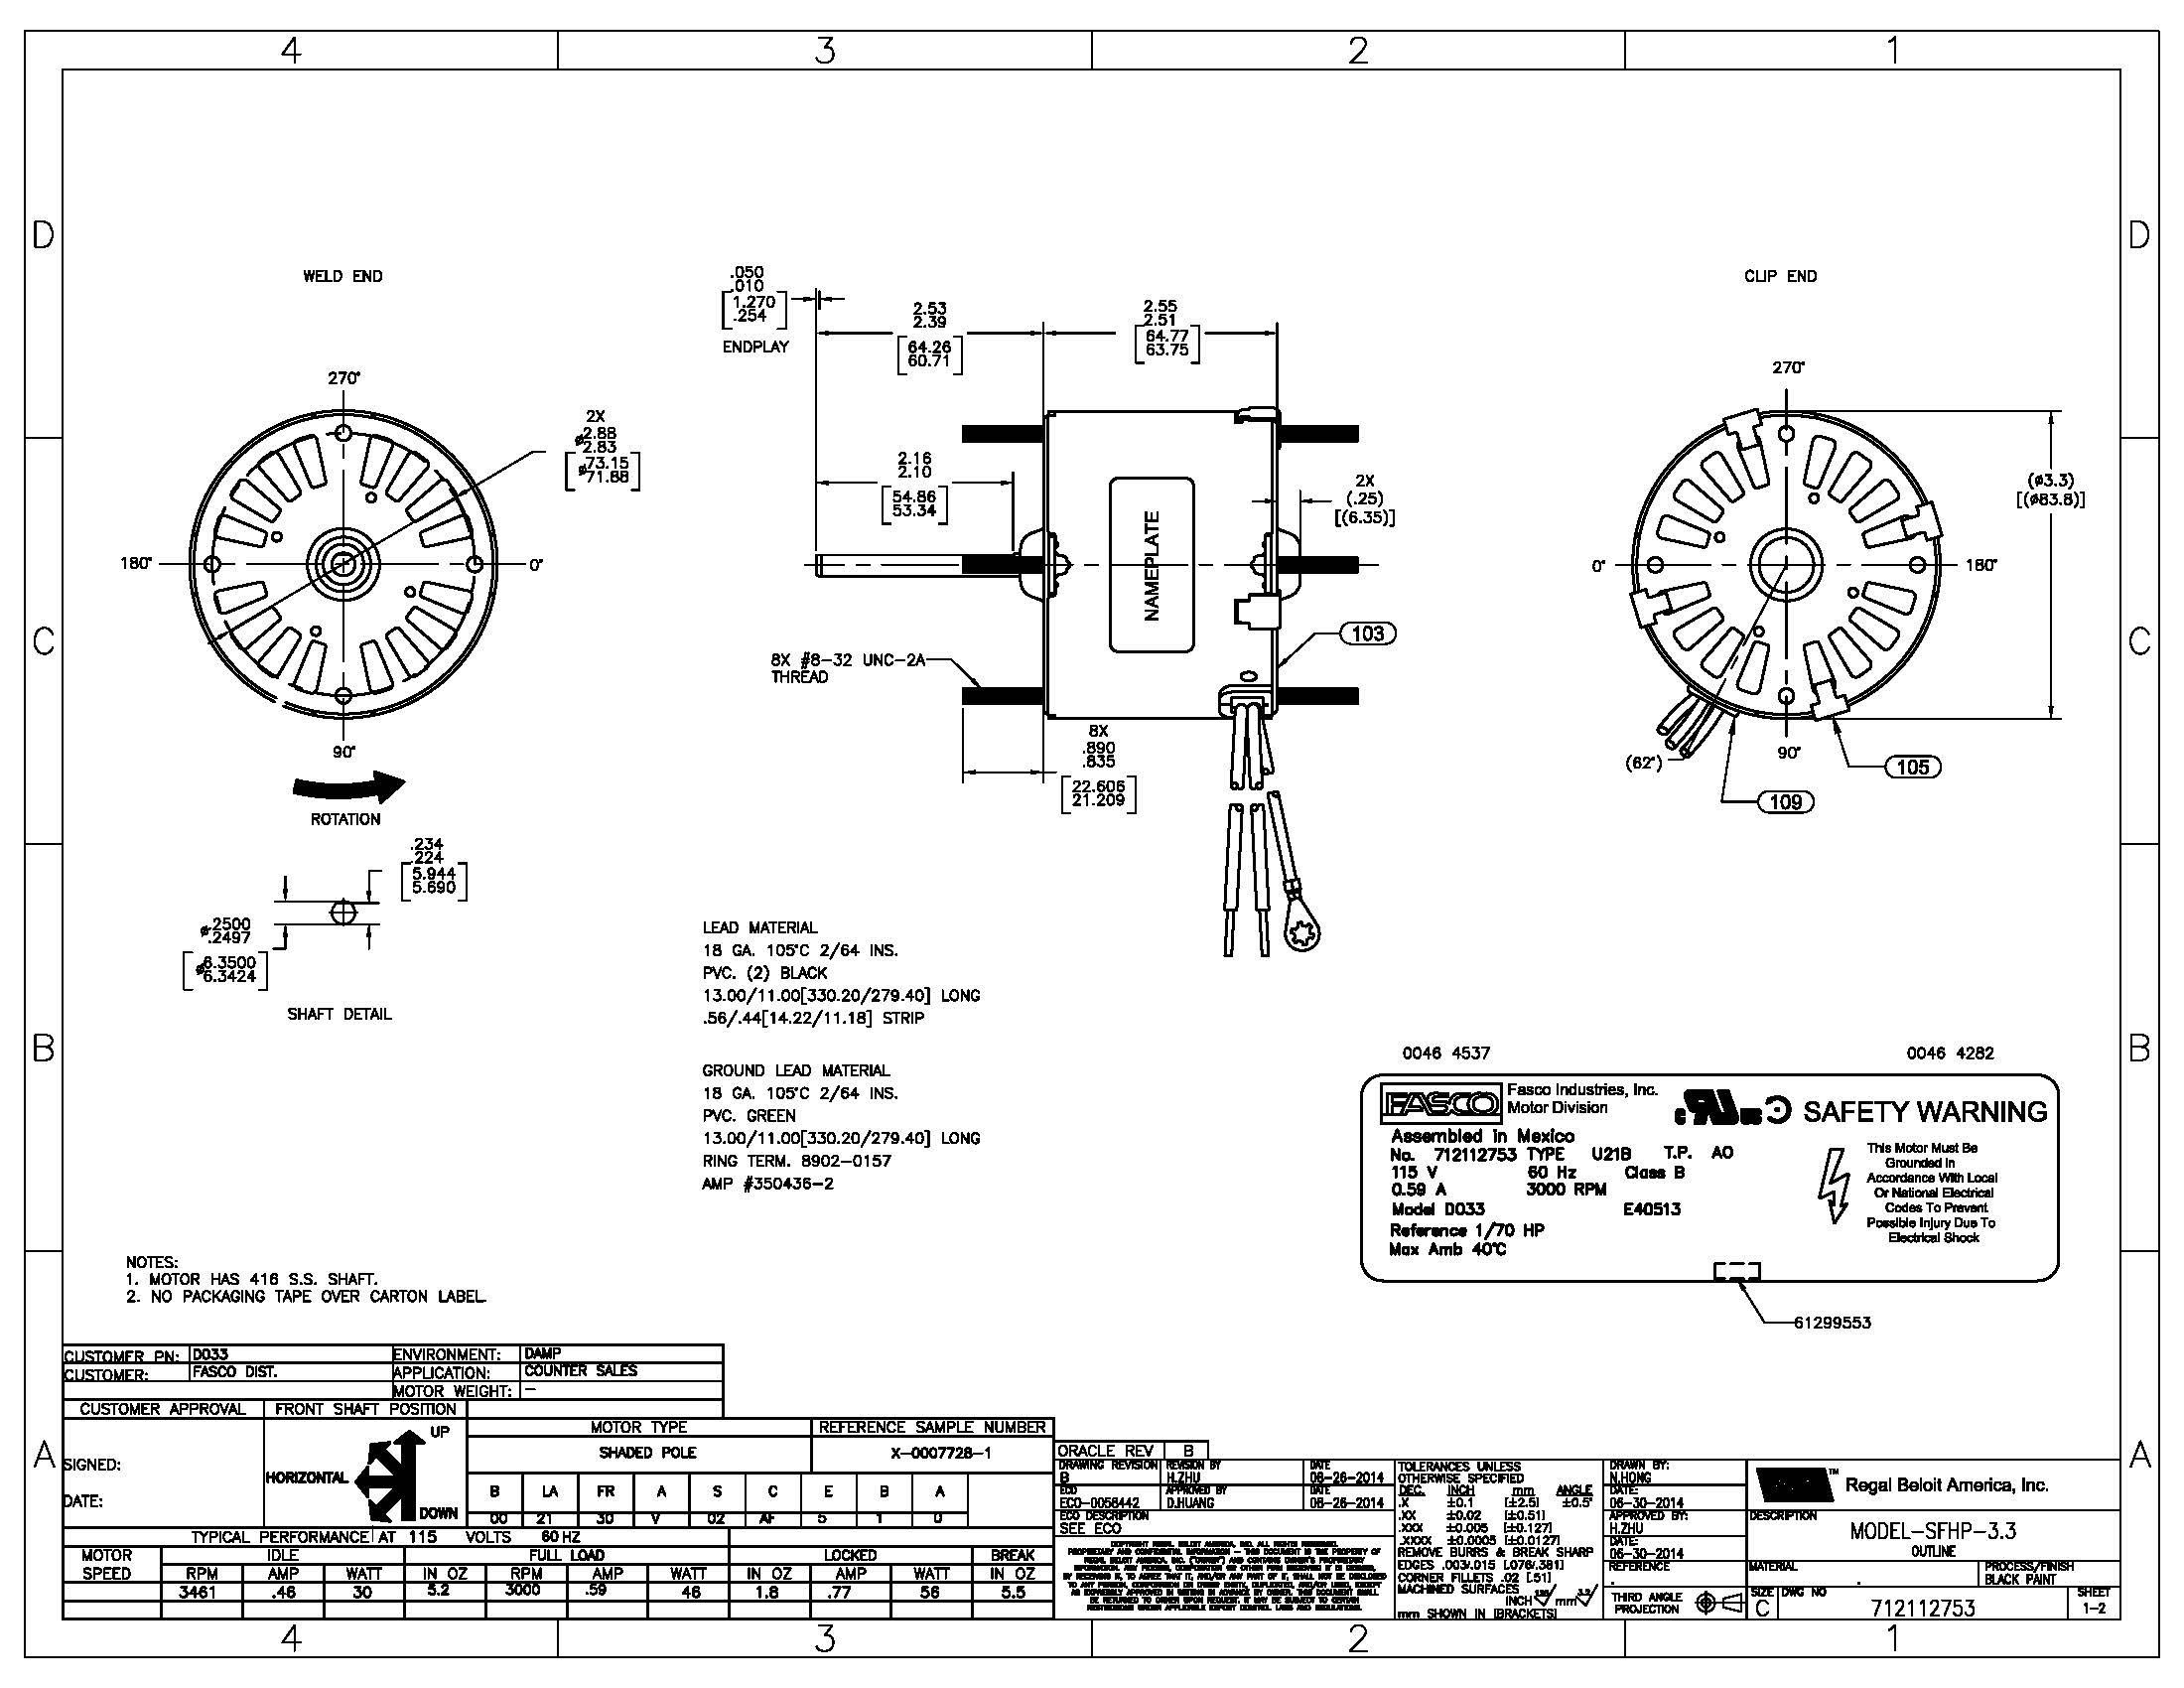 Gould Electric Motor Wiring Diagram | Wiring Diagram - Gould Century Motor Wiring Diagram